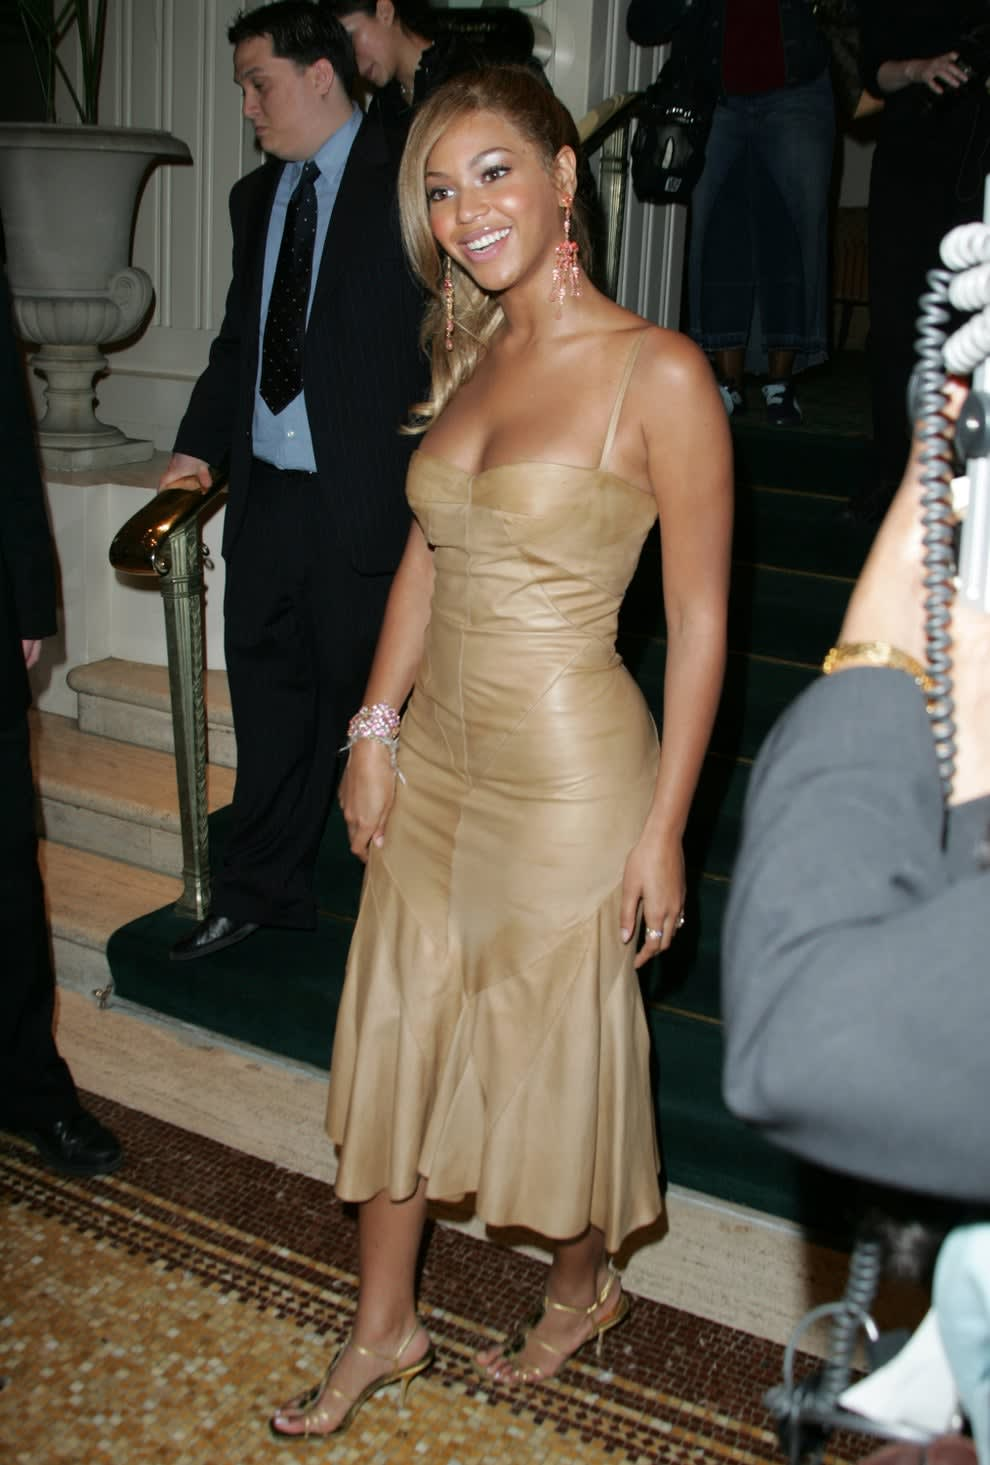 Beyoncé wears a beige suede dress with sandals and her hair in a side, low ponytail